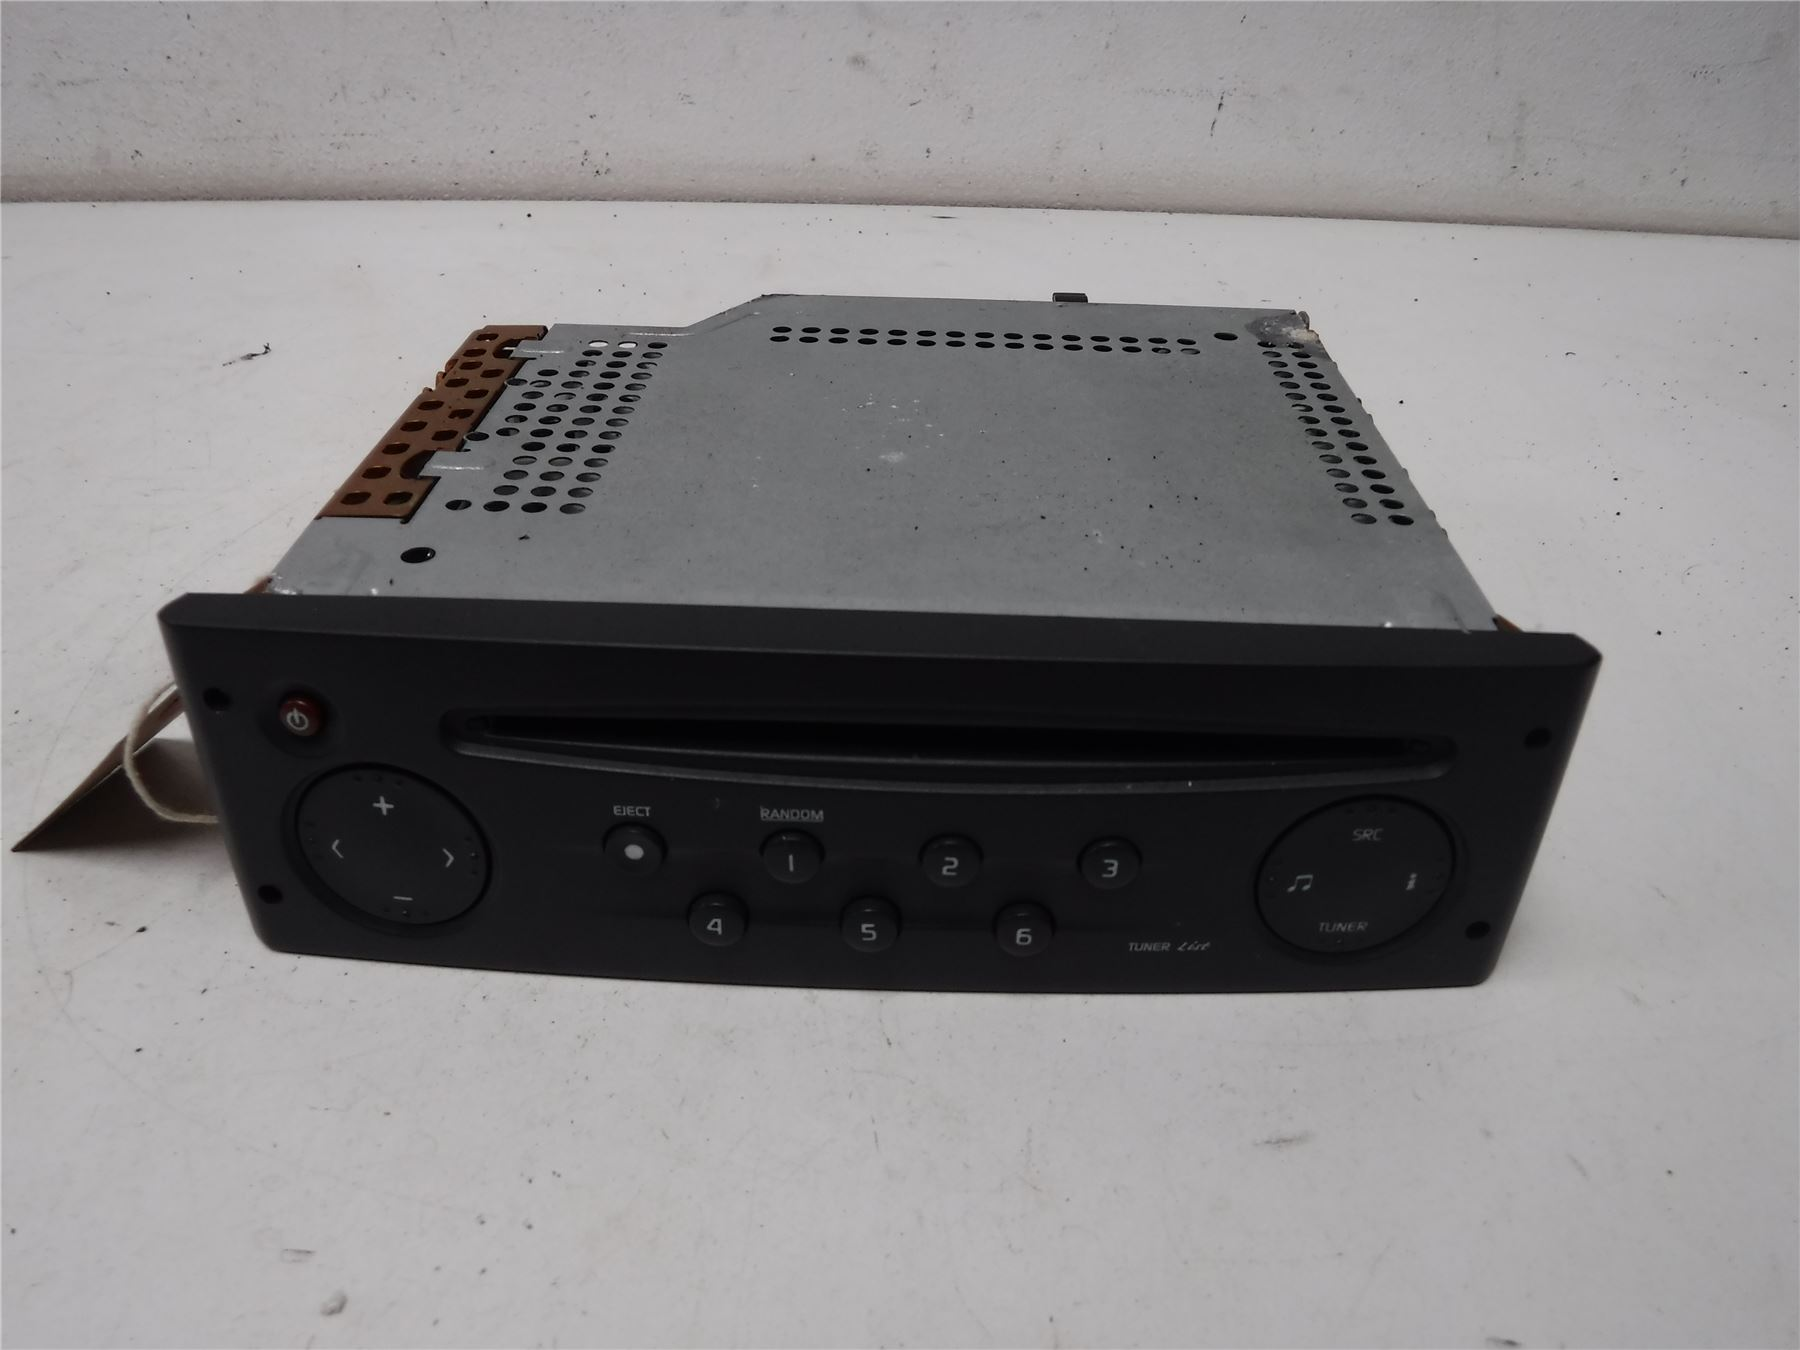 renault clio mk2 ph2 2001 2006 cd player radio ebay. Black Bedroom Furniture Sets. Home Design Ideas